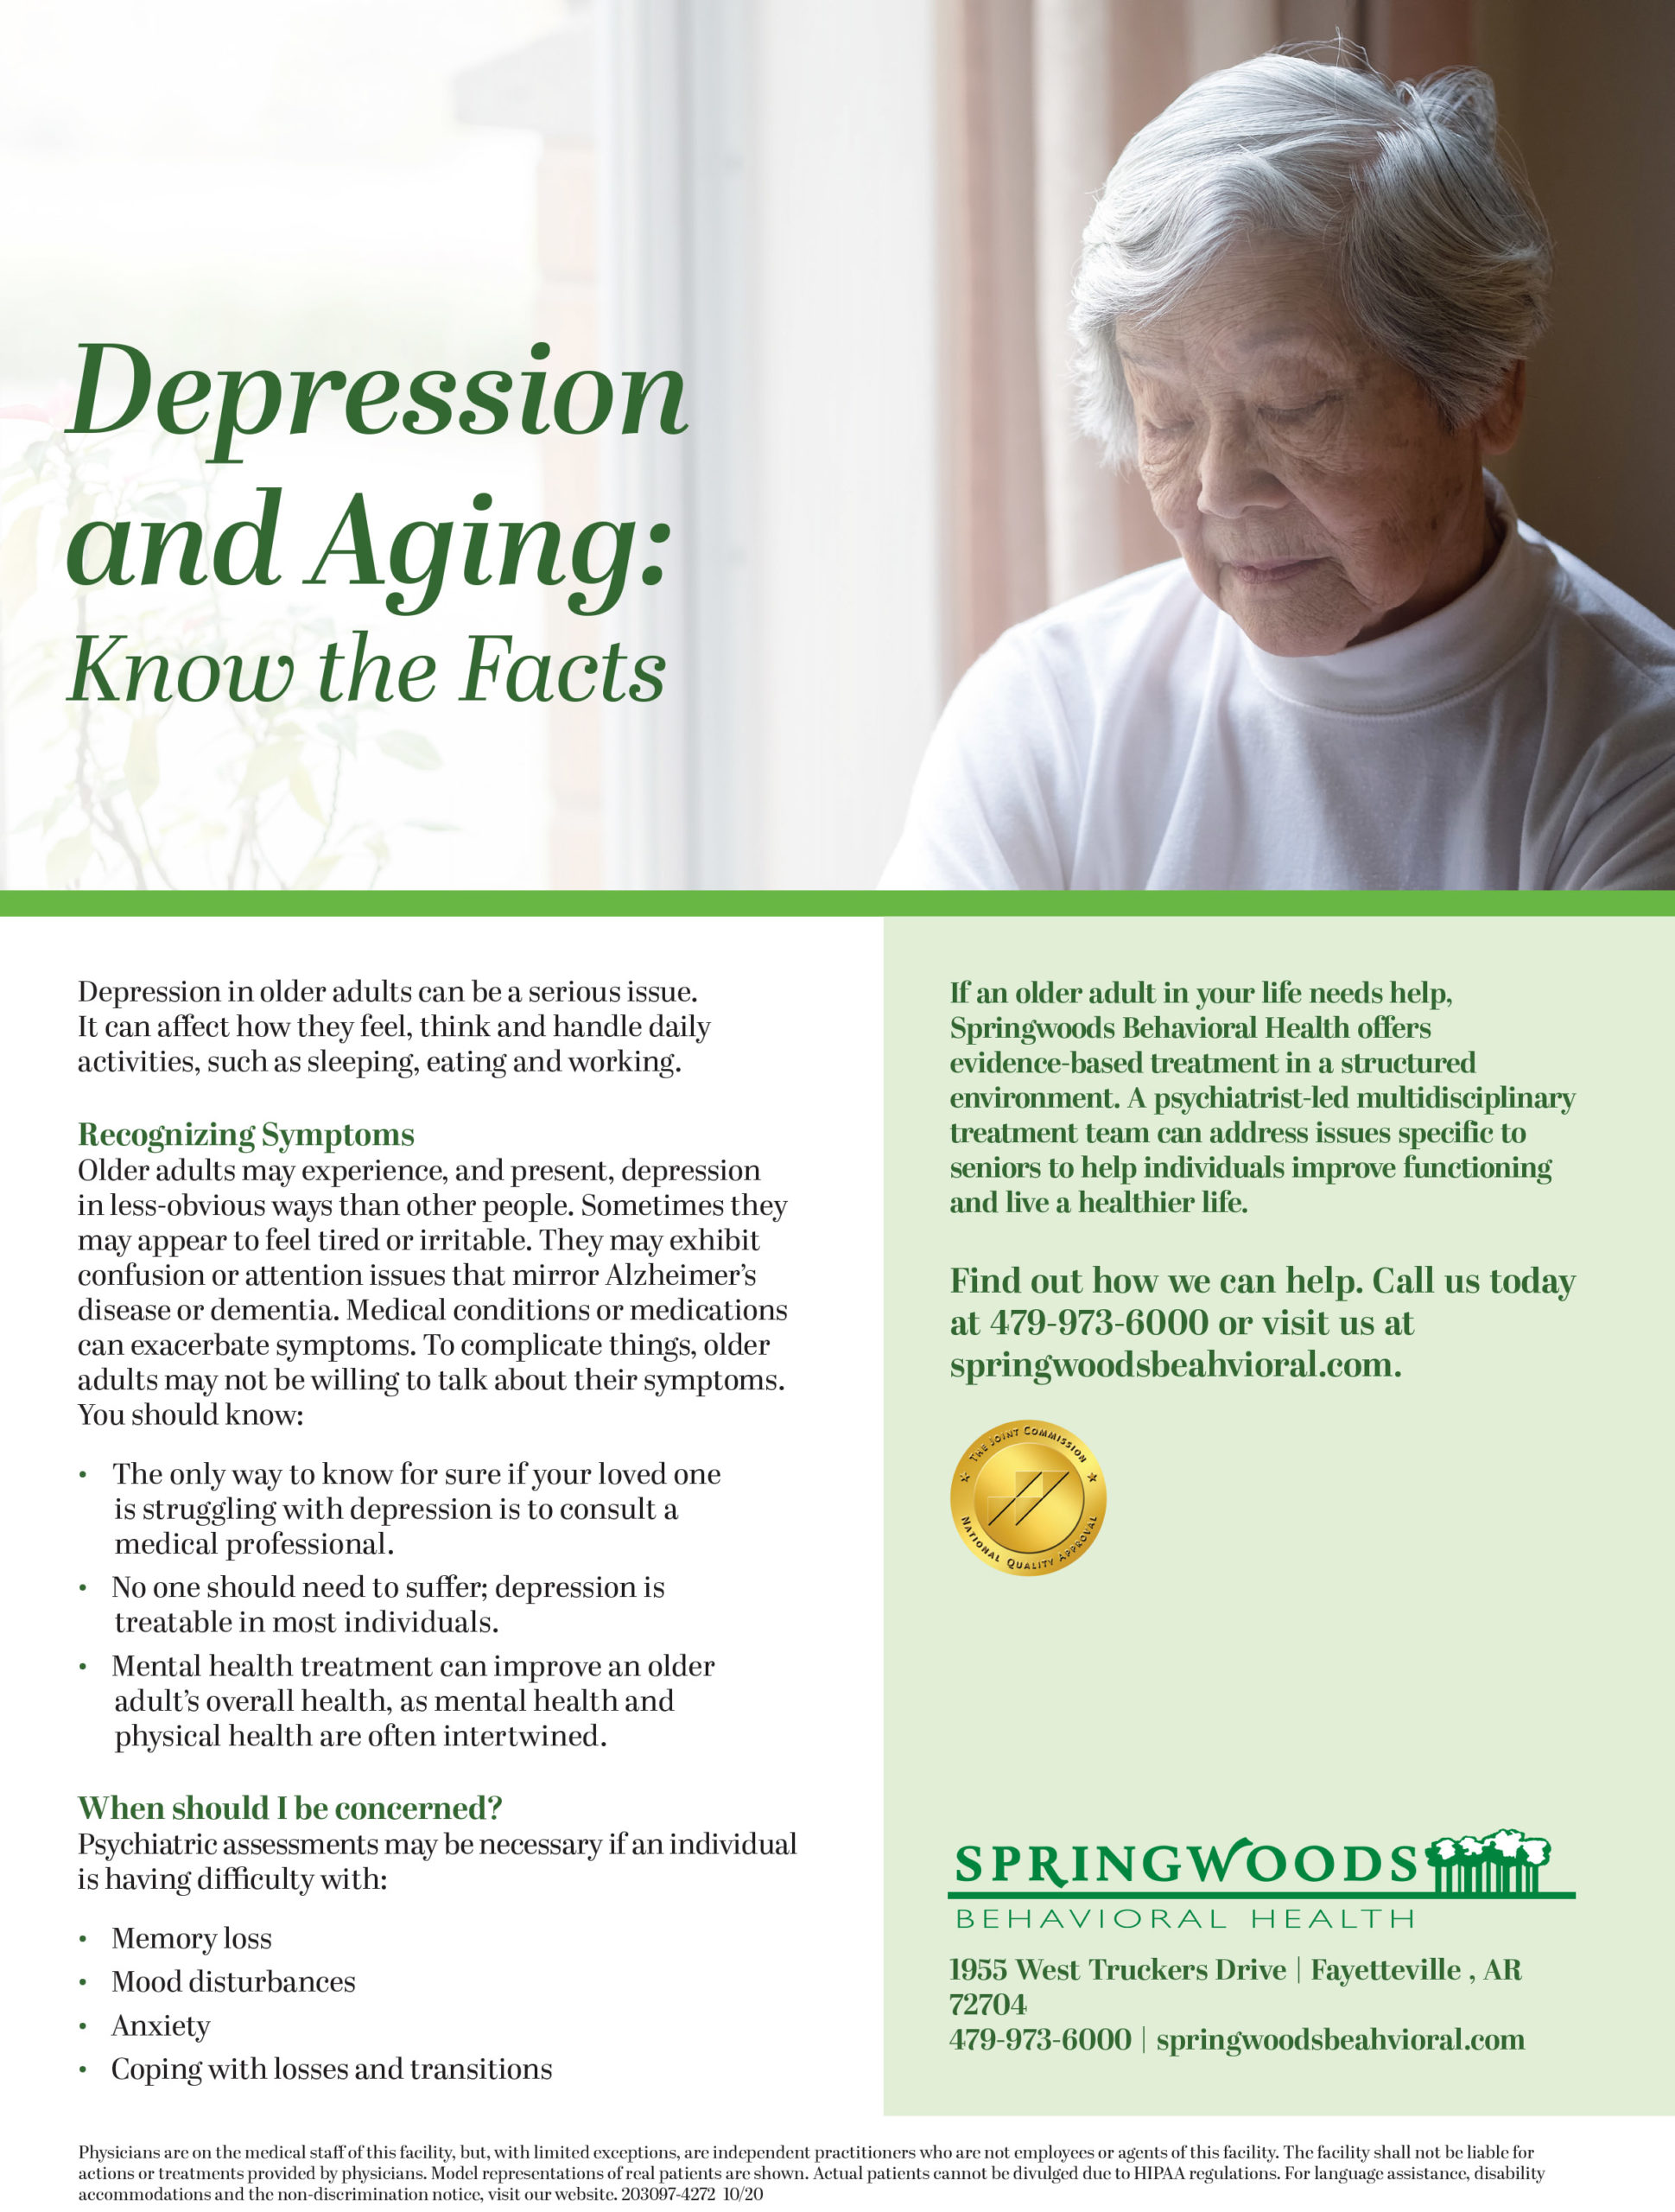 Aging Depression Flyer - Geriatric Psych Flyer - Senior Care Resources - 2021 SCA Aging Conference